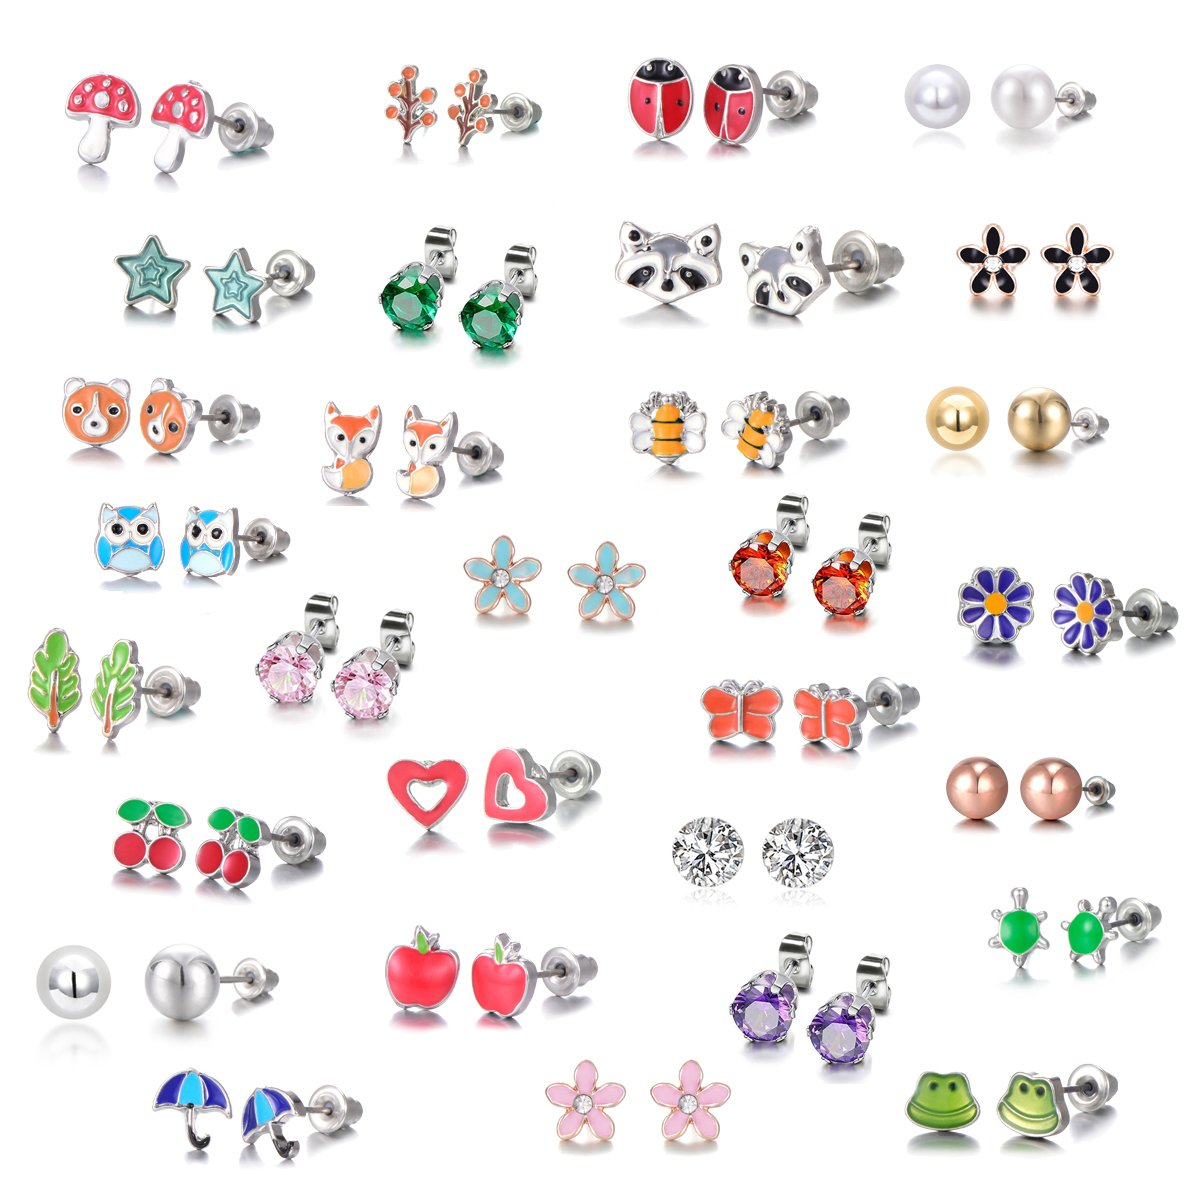 30 Pairs Stainless Steel Mixed Color Cute Animals Fox Heart Star Ladybug Bee Frog Mushroom Tree Daisy Umbrella Rose Gold White Pearl CZ Jewelry Stud Earrings Set (animal tree pearl) luoyue UK_B077XK4Y9G